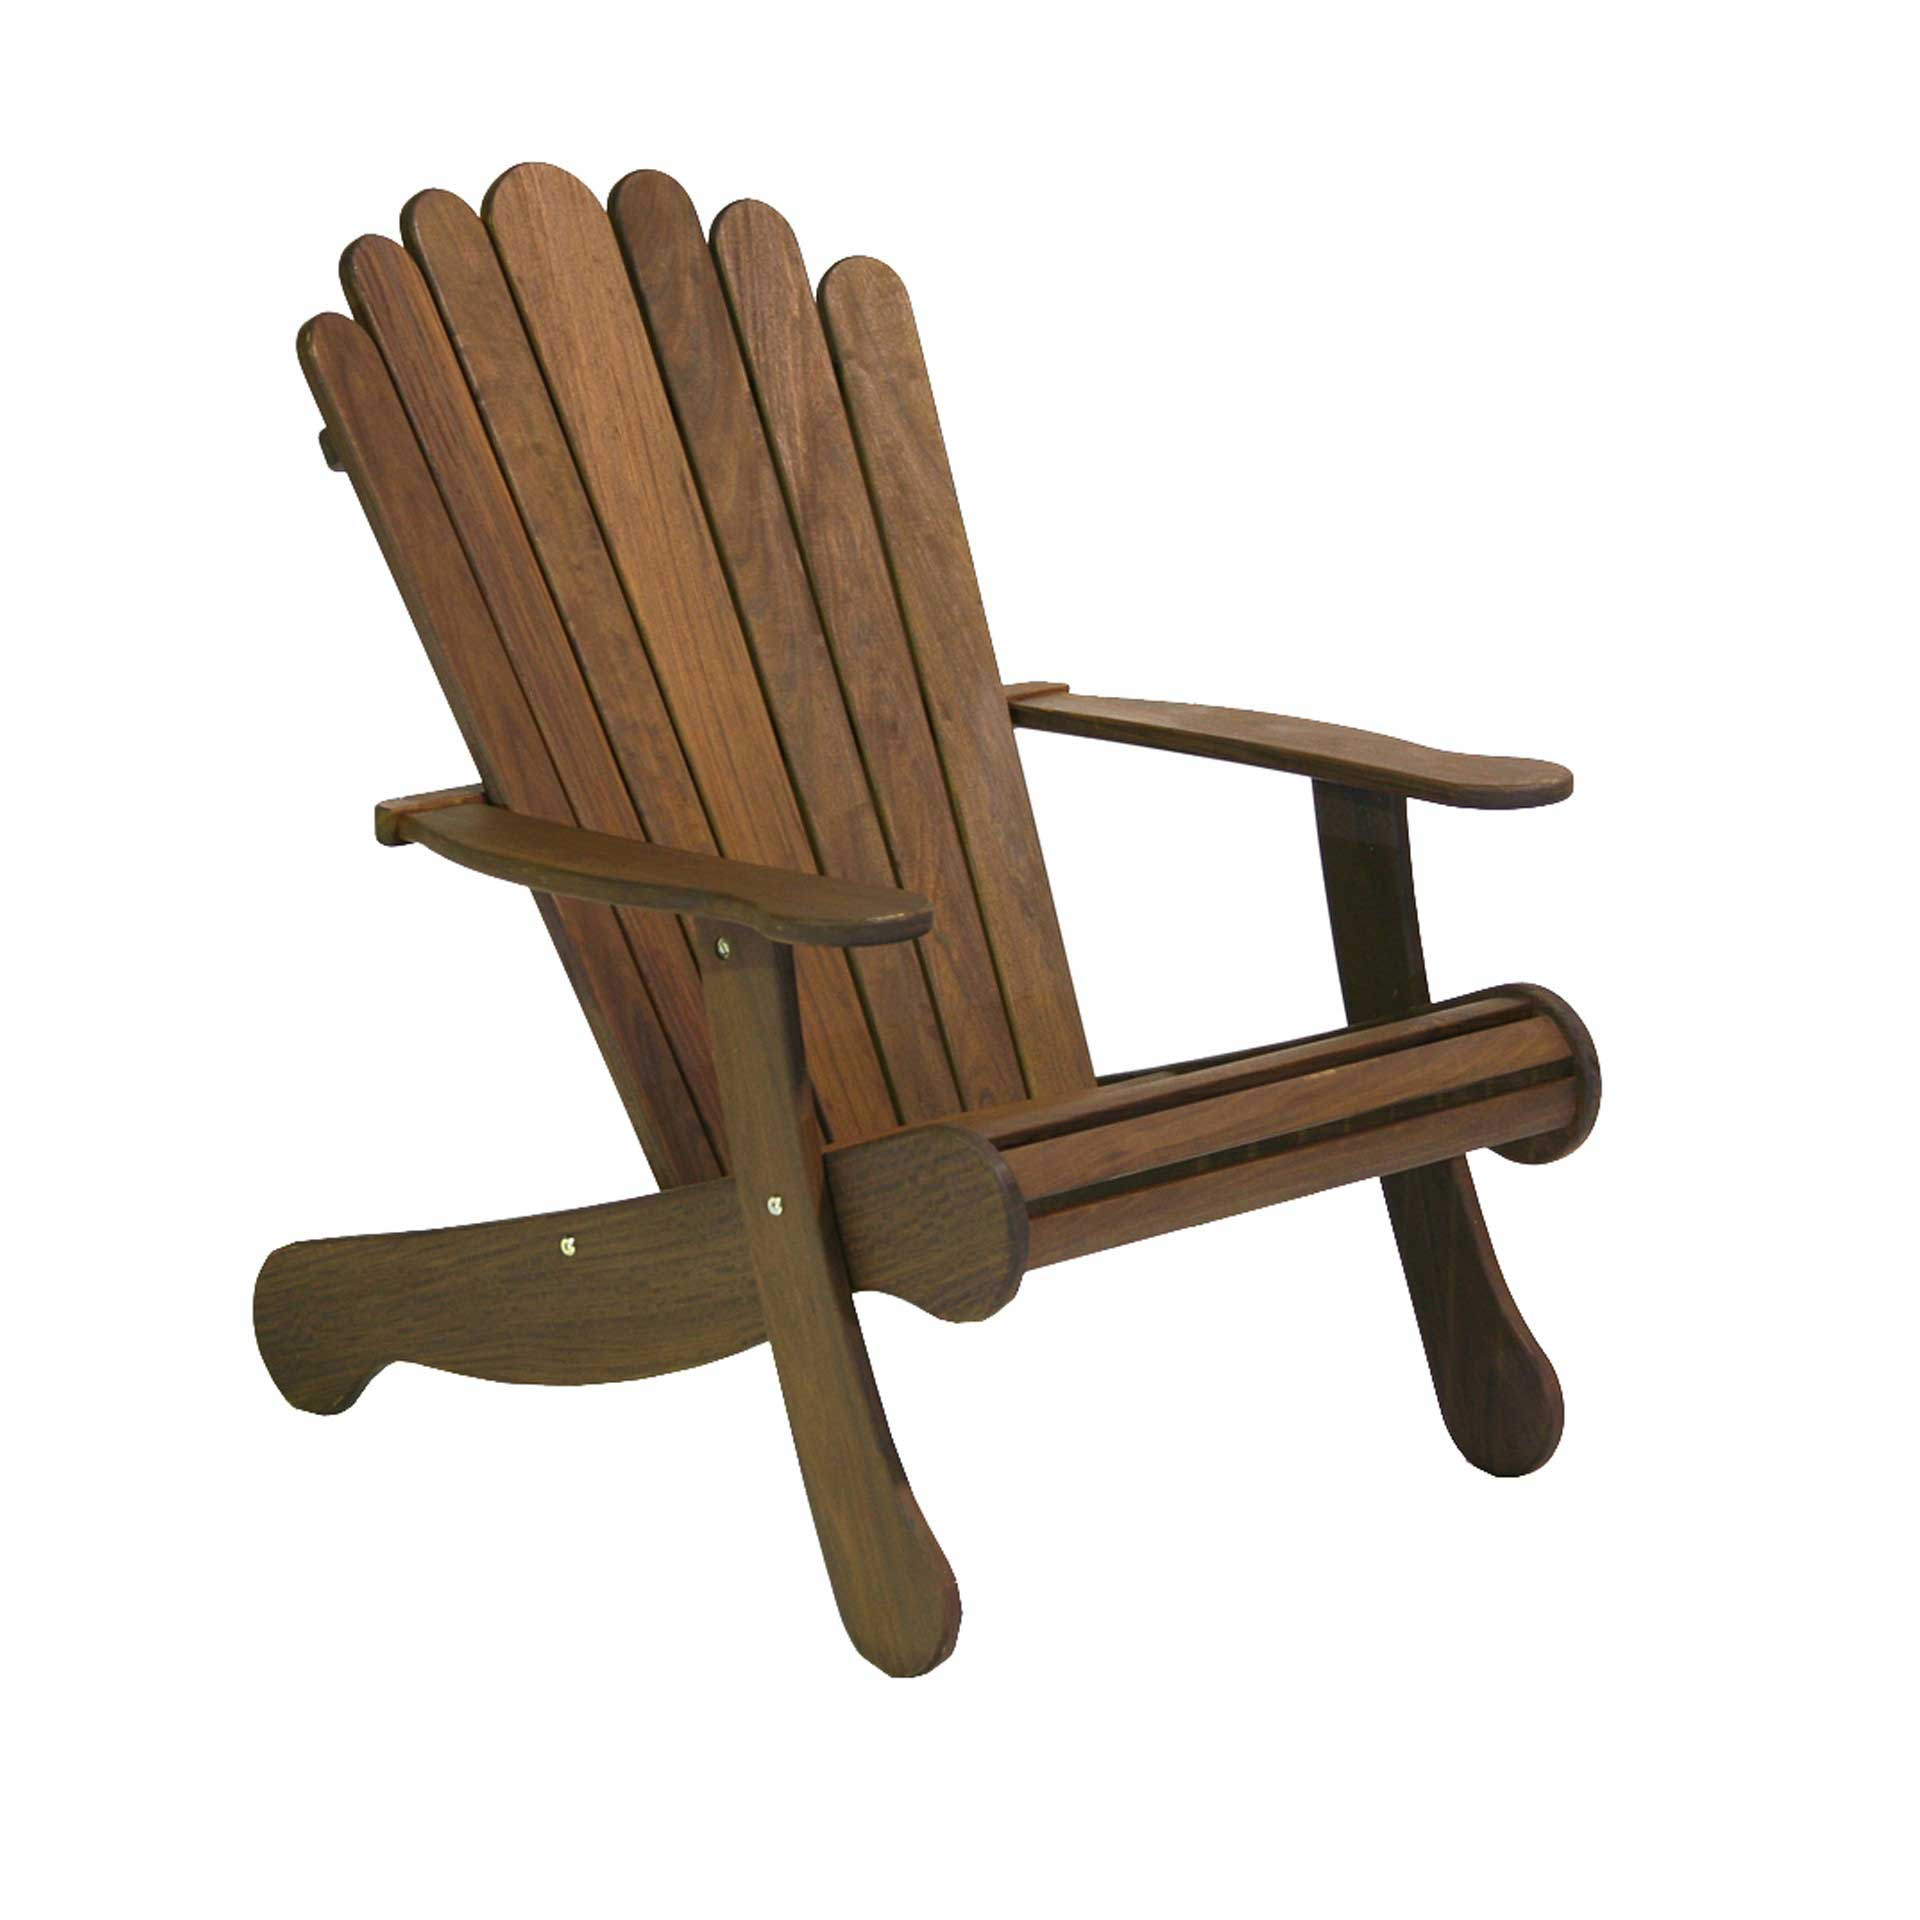 IPE Adirondack Chair